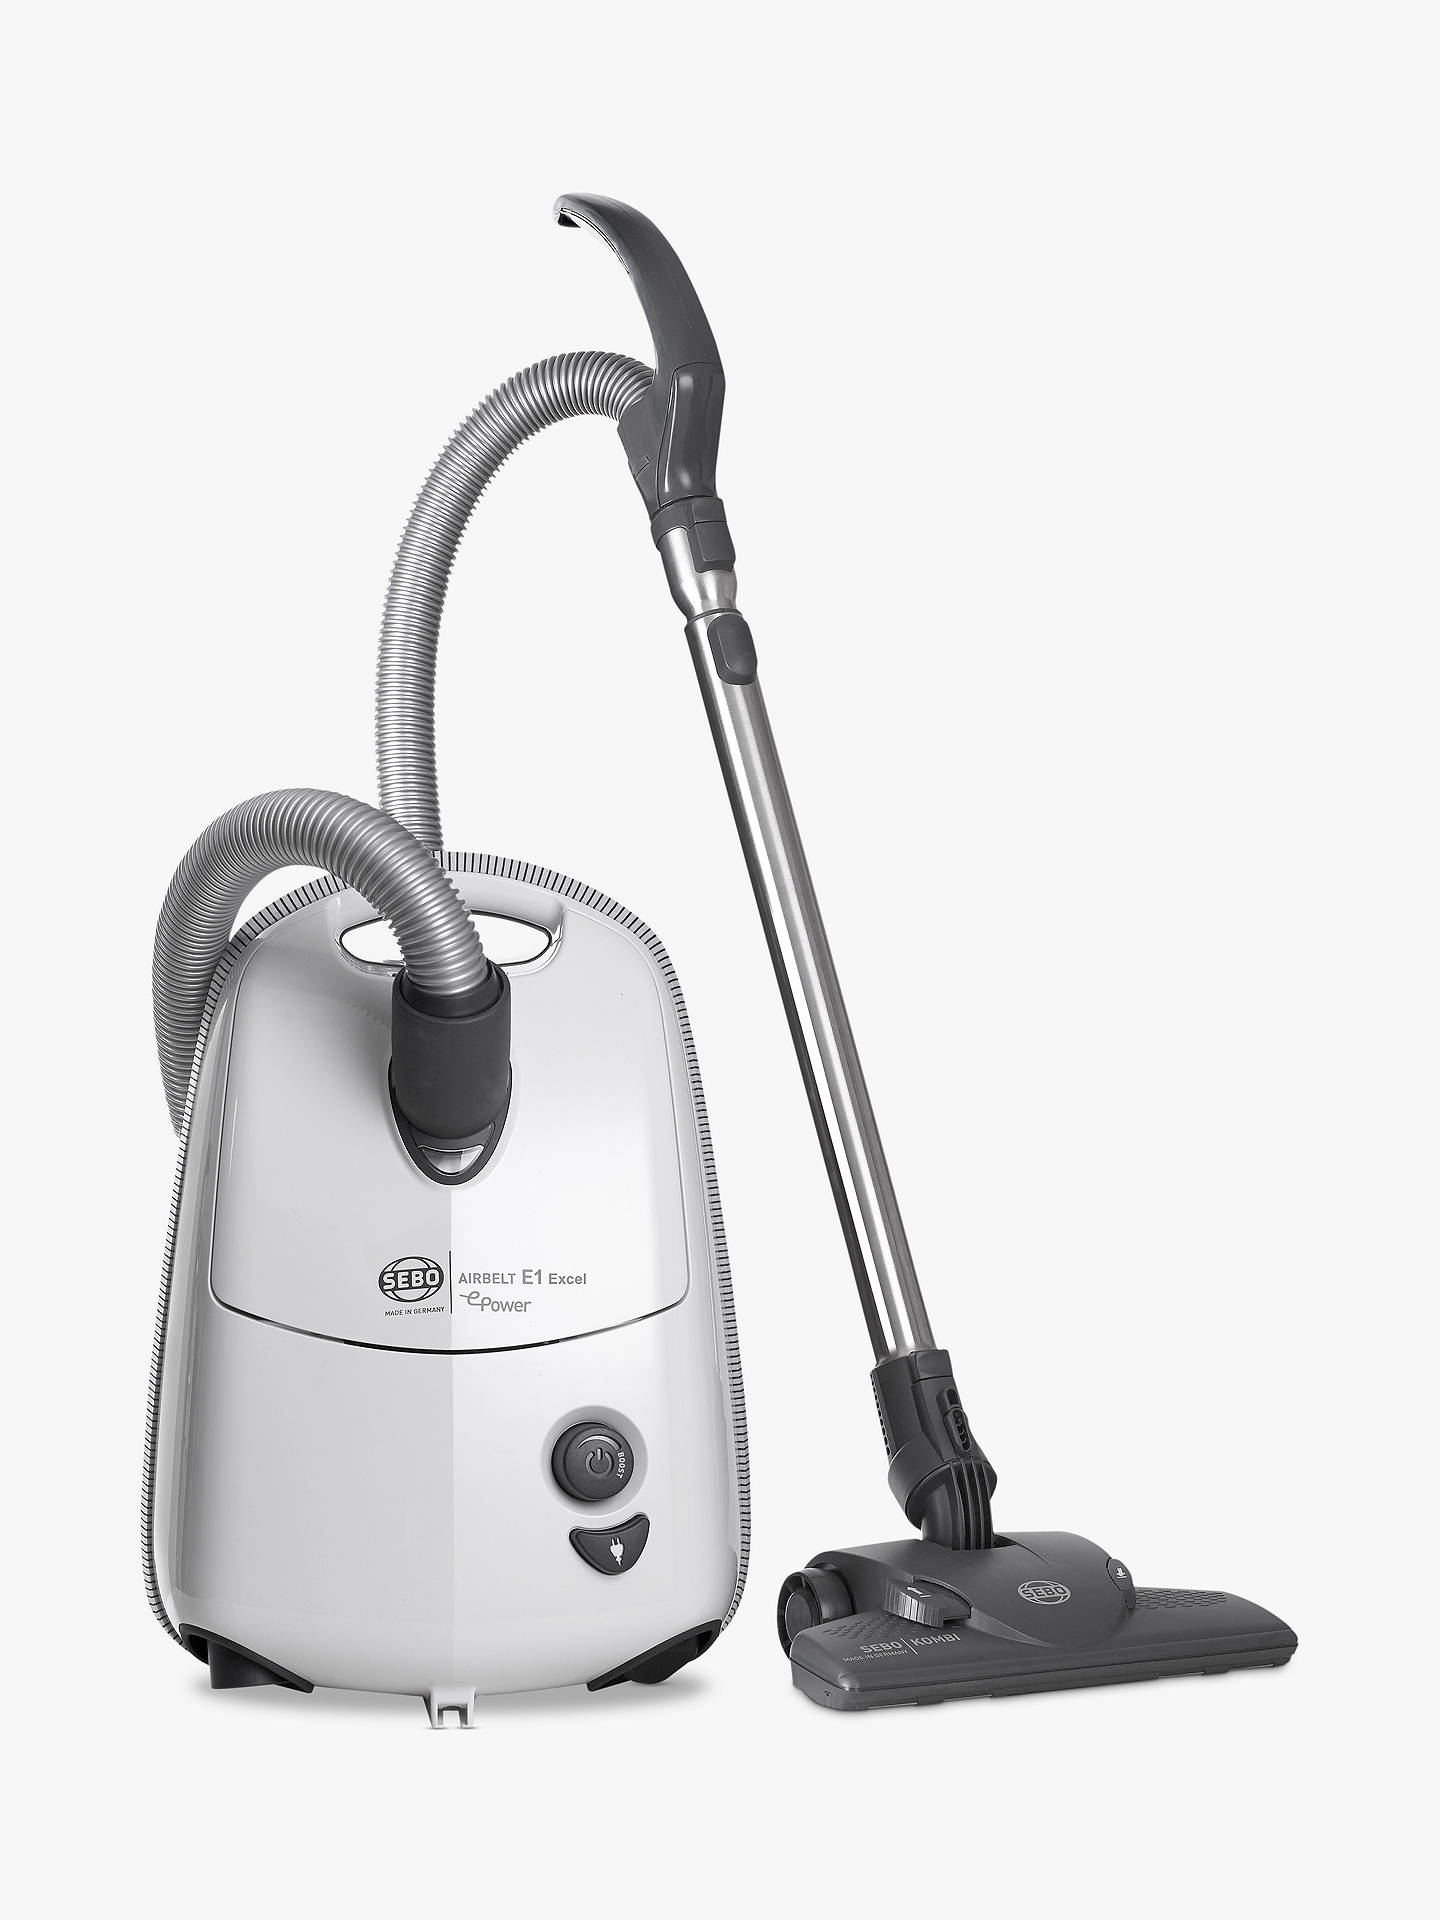 BuySEBO Airbelt E1 Excel ePower Vacuum Cleaner, White Online at johnlewis.com